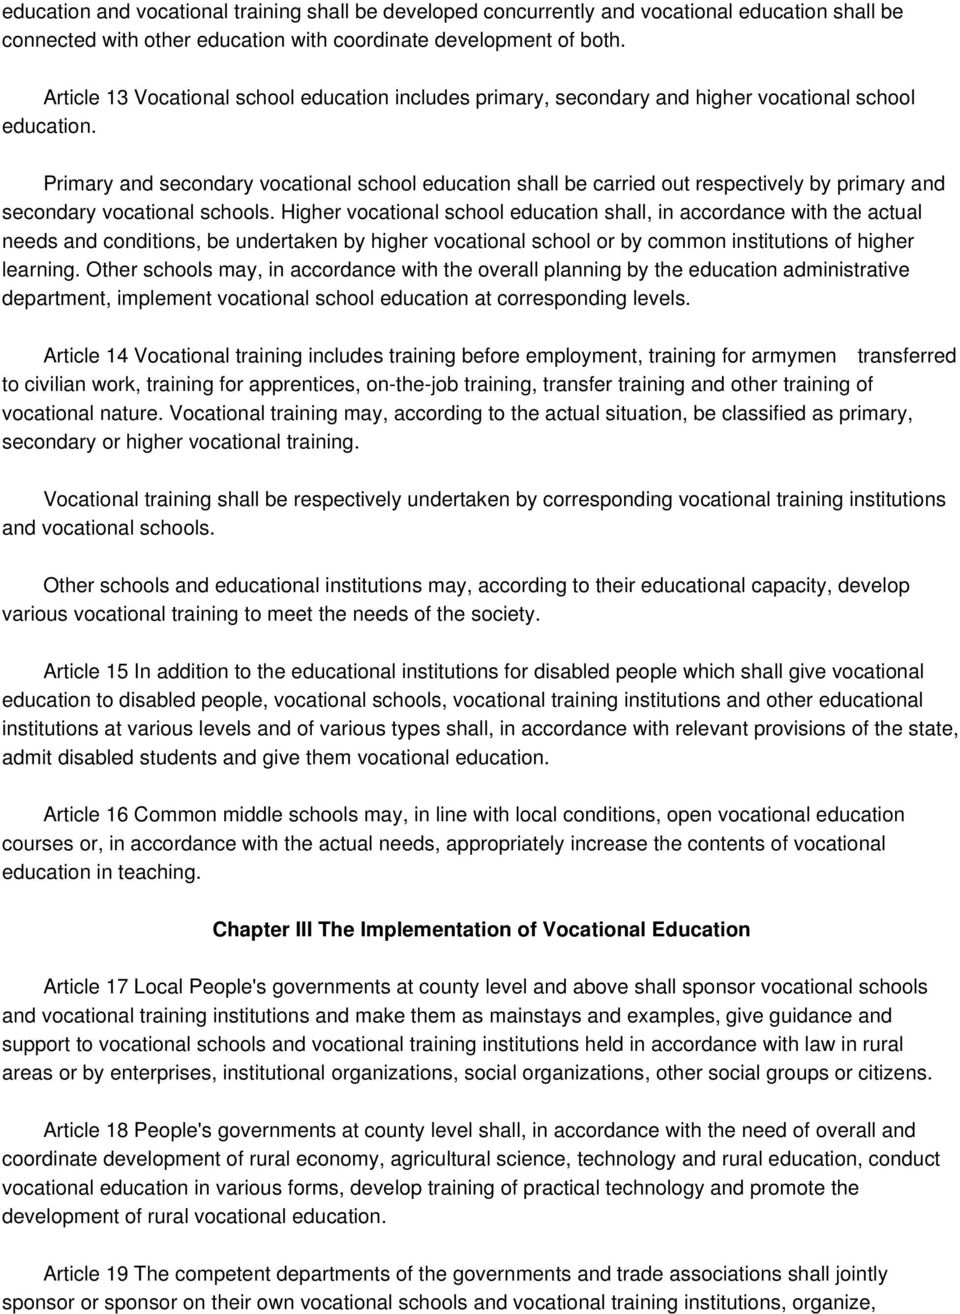 Vocational Education Law of the People's Republic of China - PDF